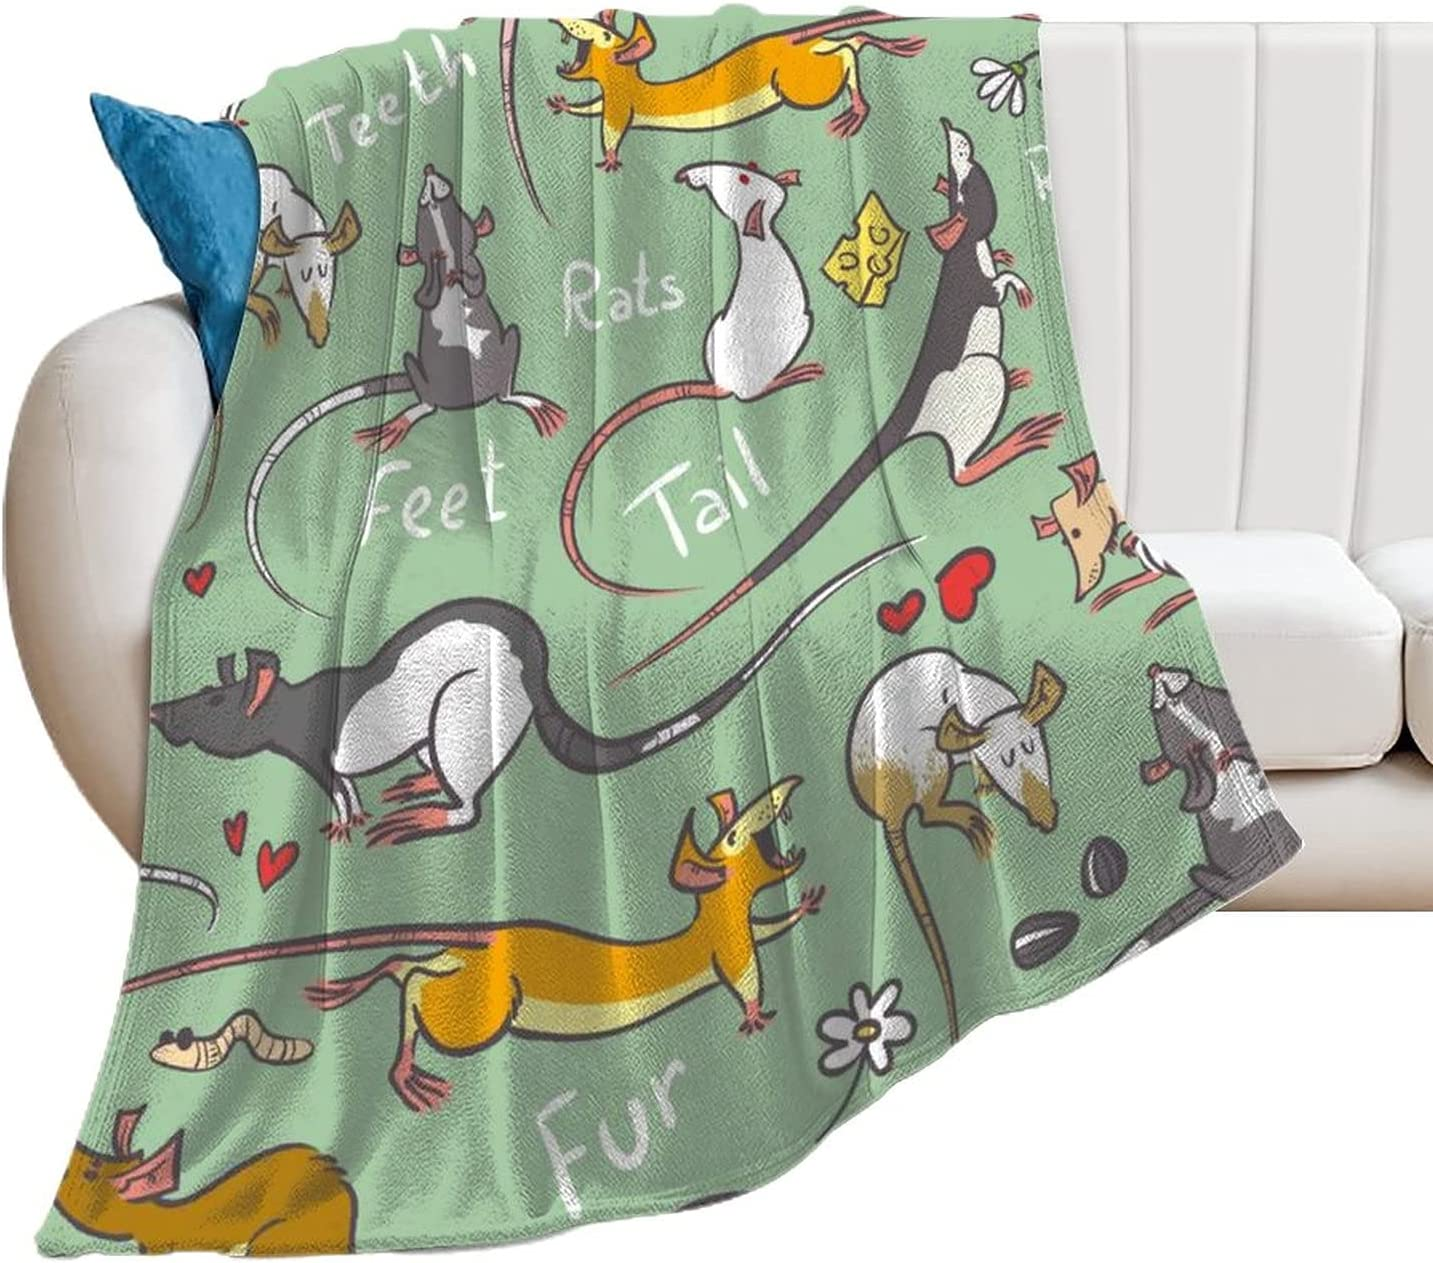 DKISEE overseas Flannel Throw Sacramento Mall Blankets Cute Rats Blanket Couch 40 Fleece